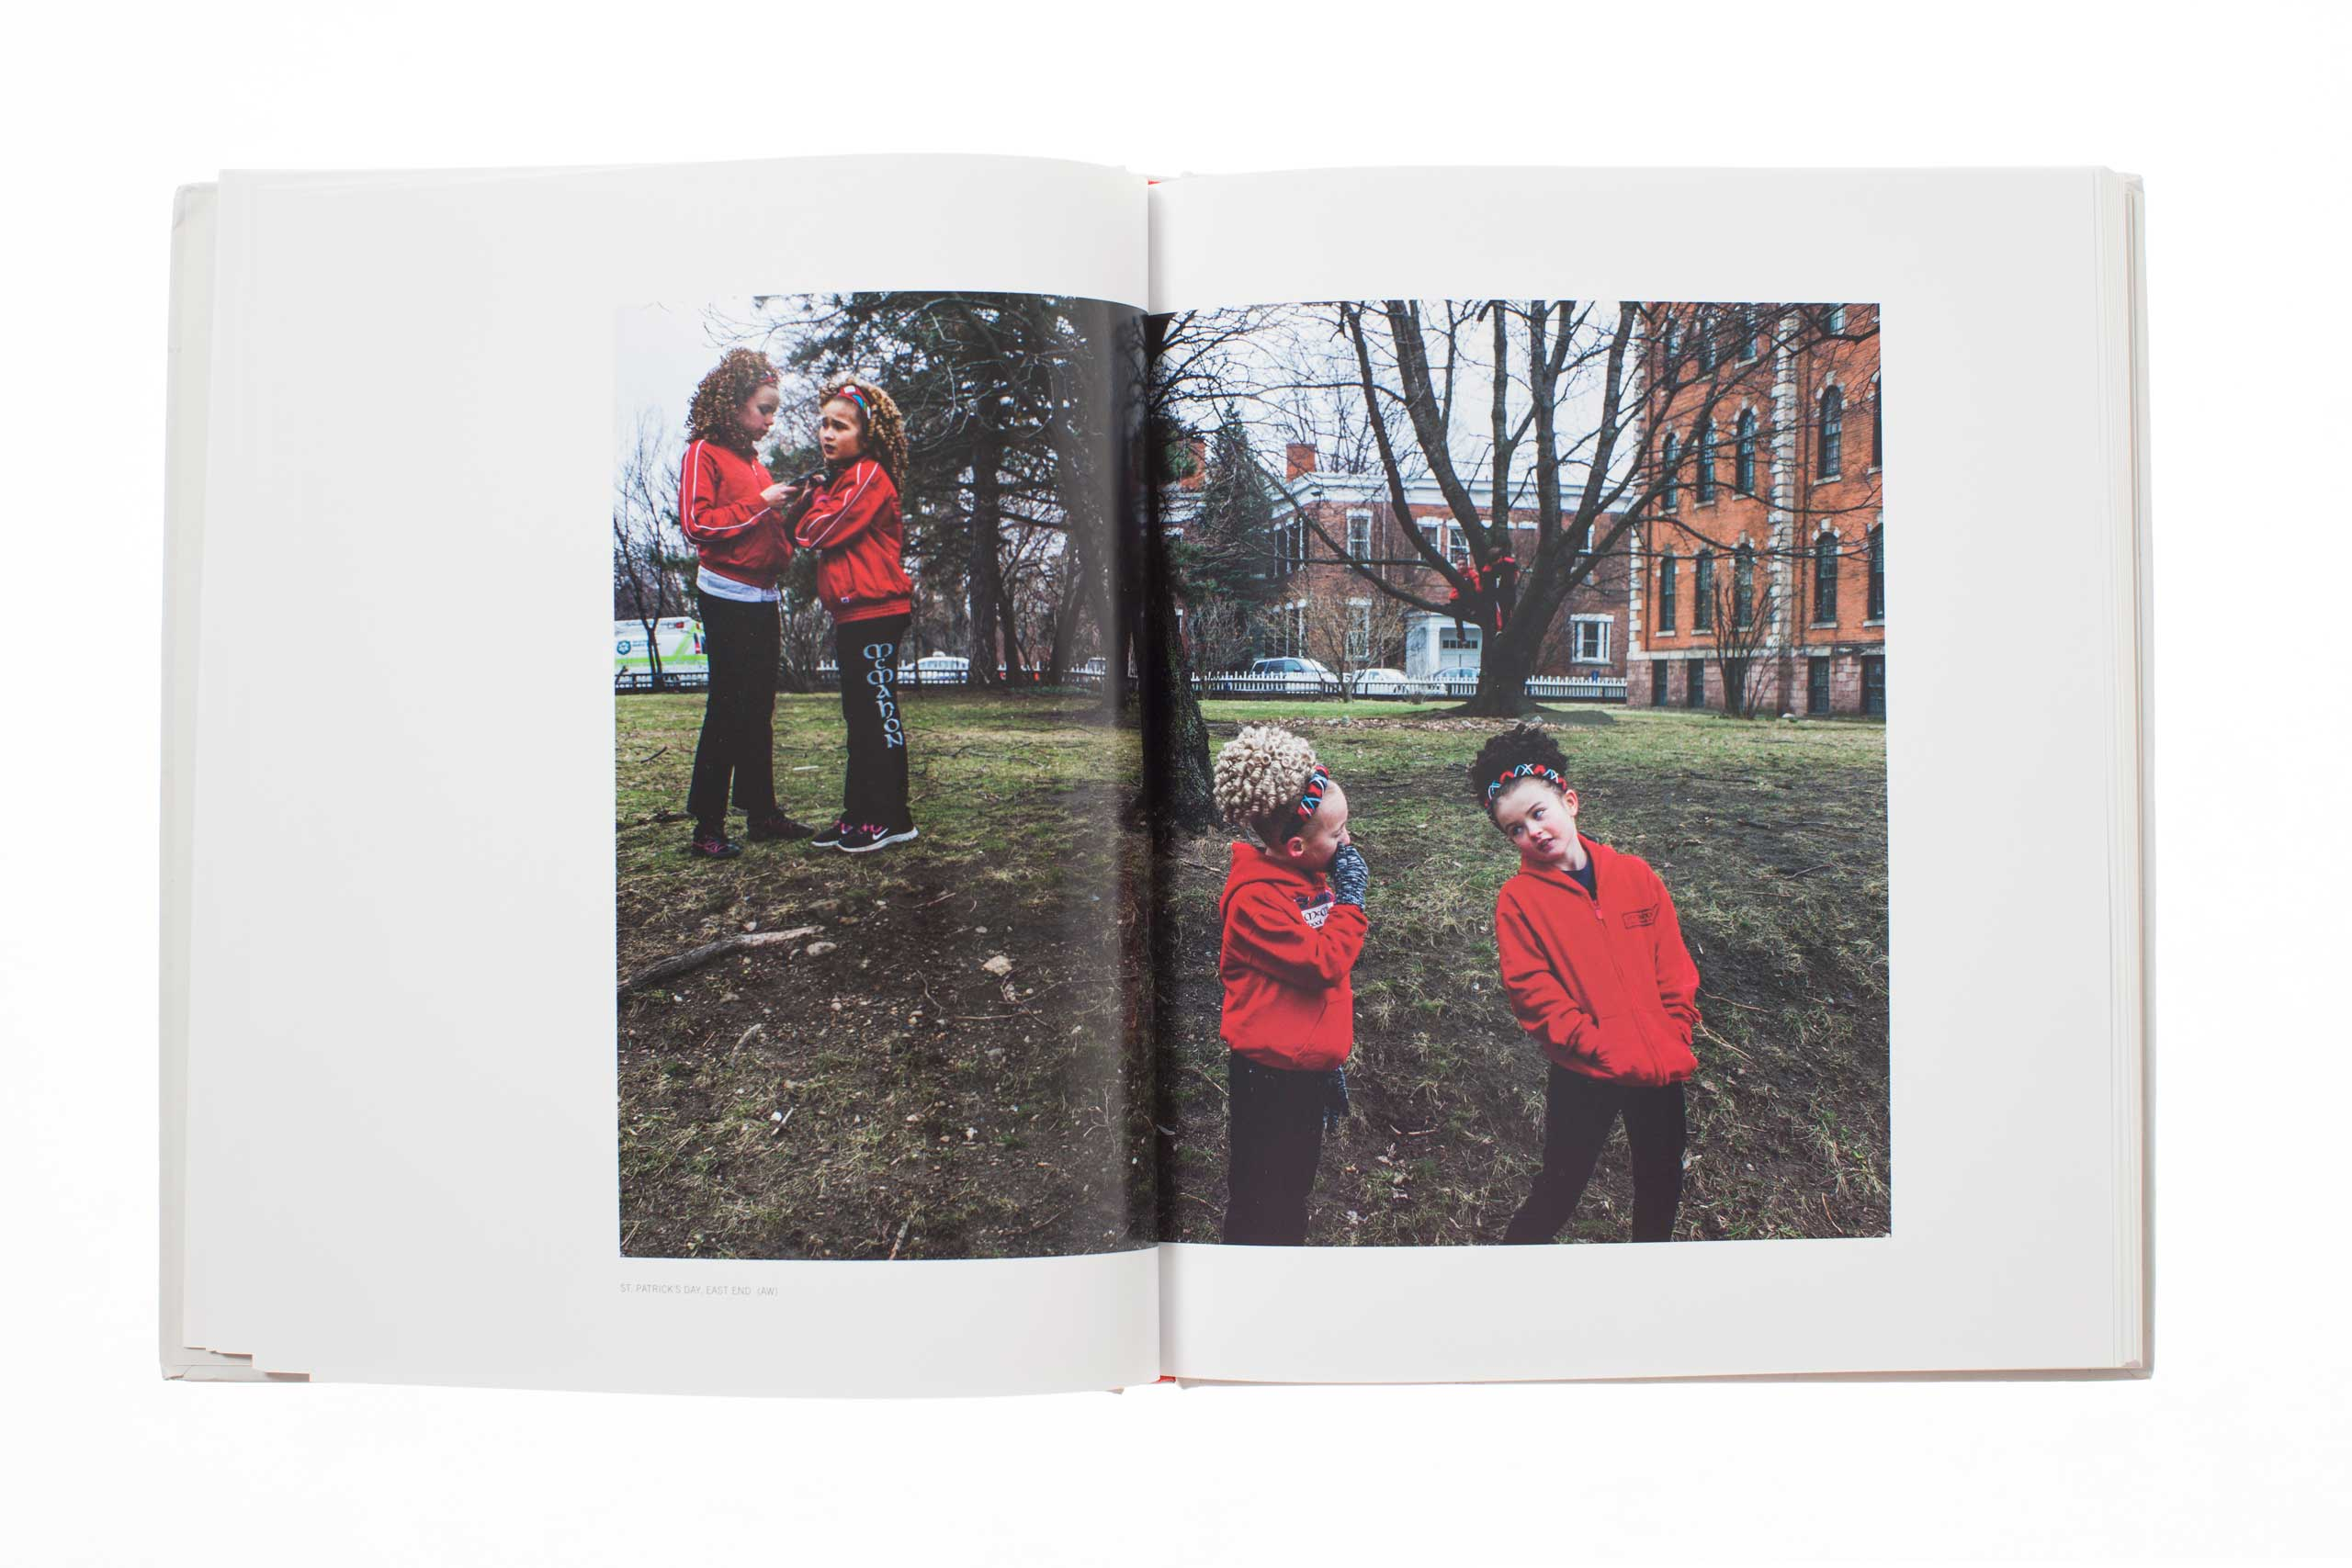 Memory City                                 The main book interweaves work from both photographers with Alex Webb shooting both digital and on his last rolls of Kodachrome film.